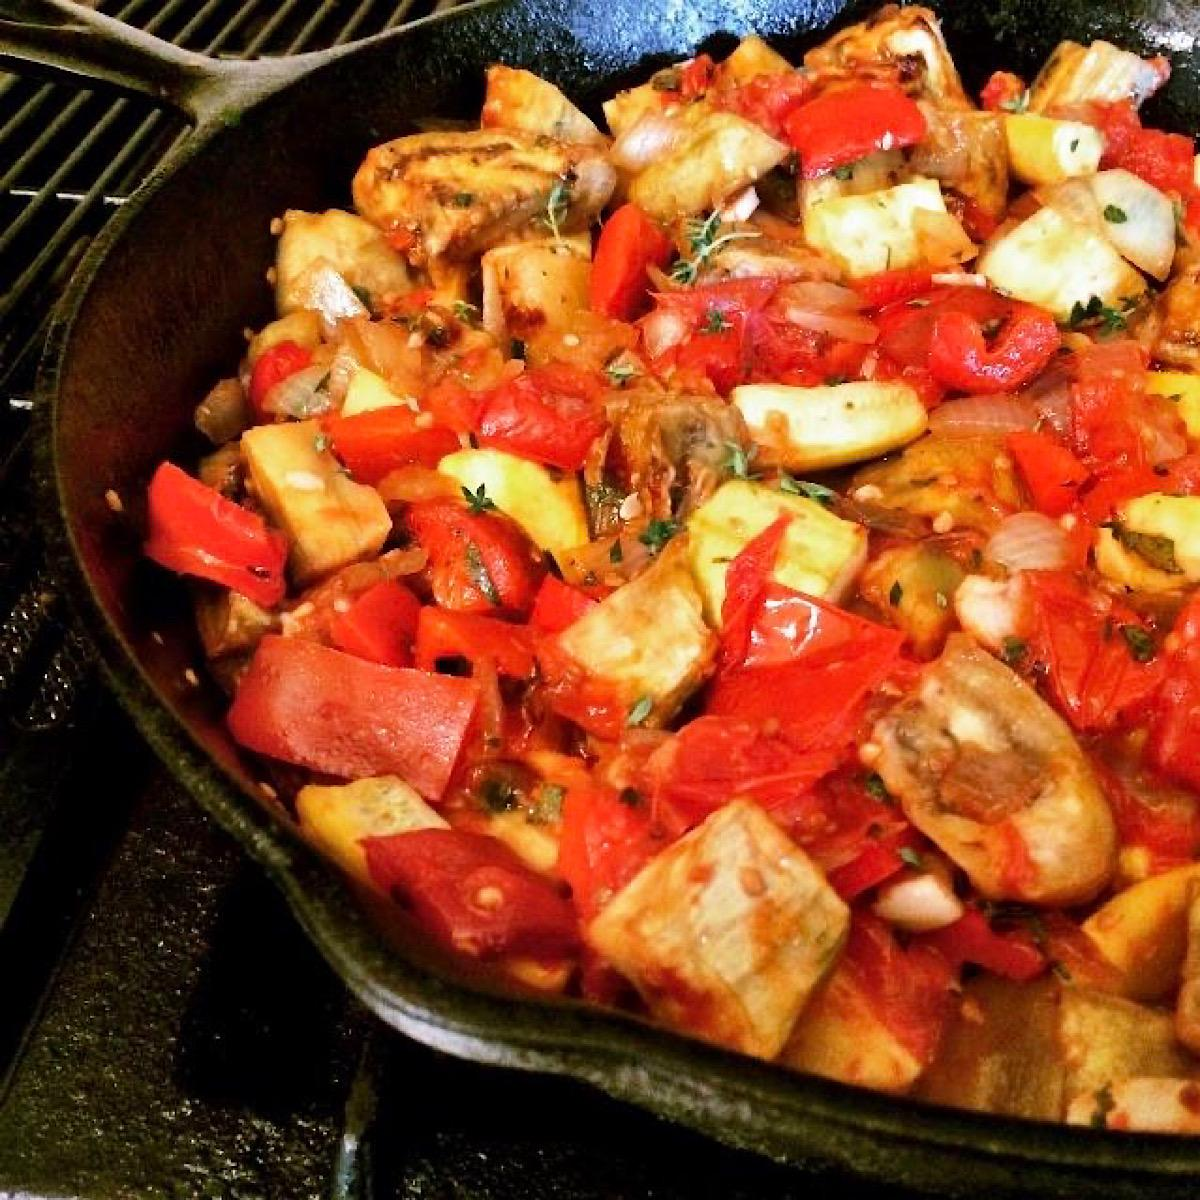 Low carb ratatouille dinner in a skillet